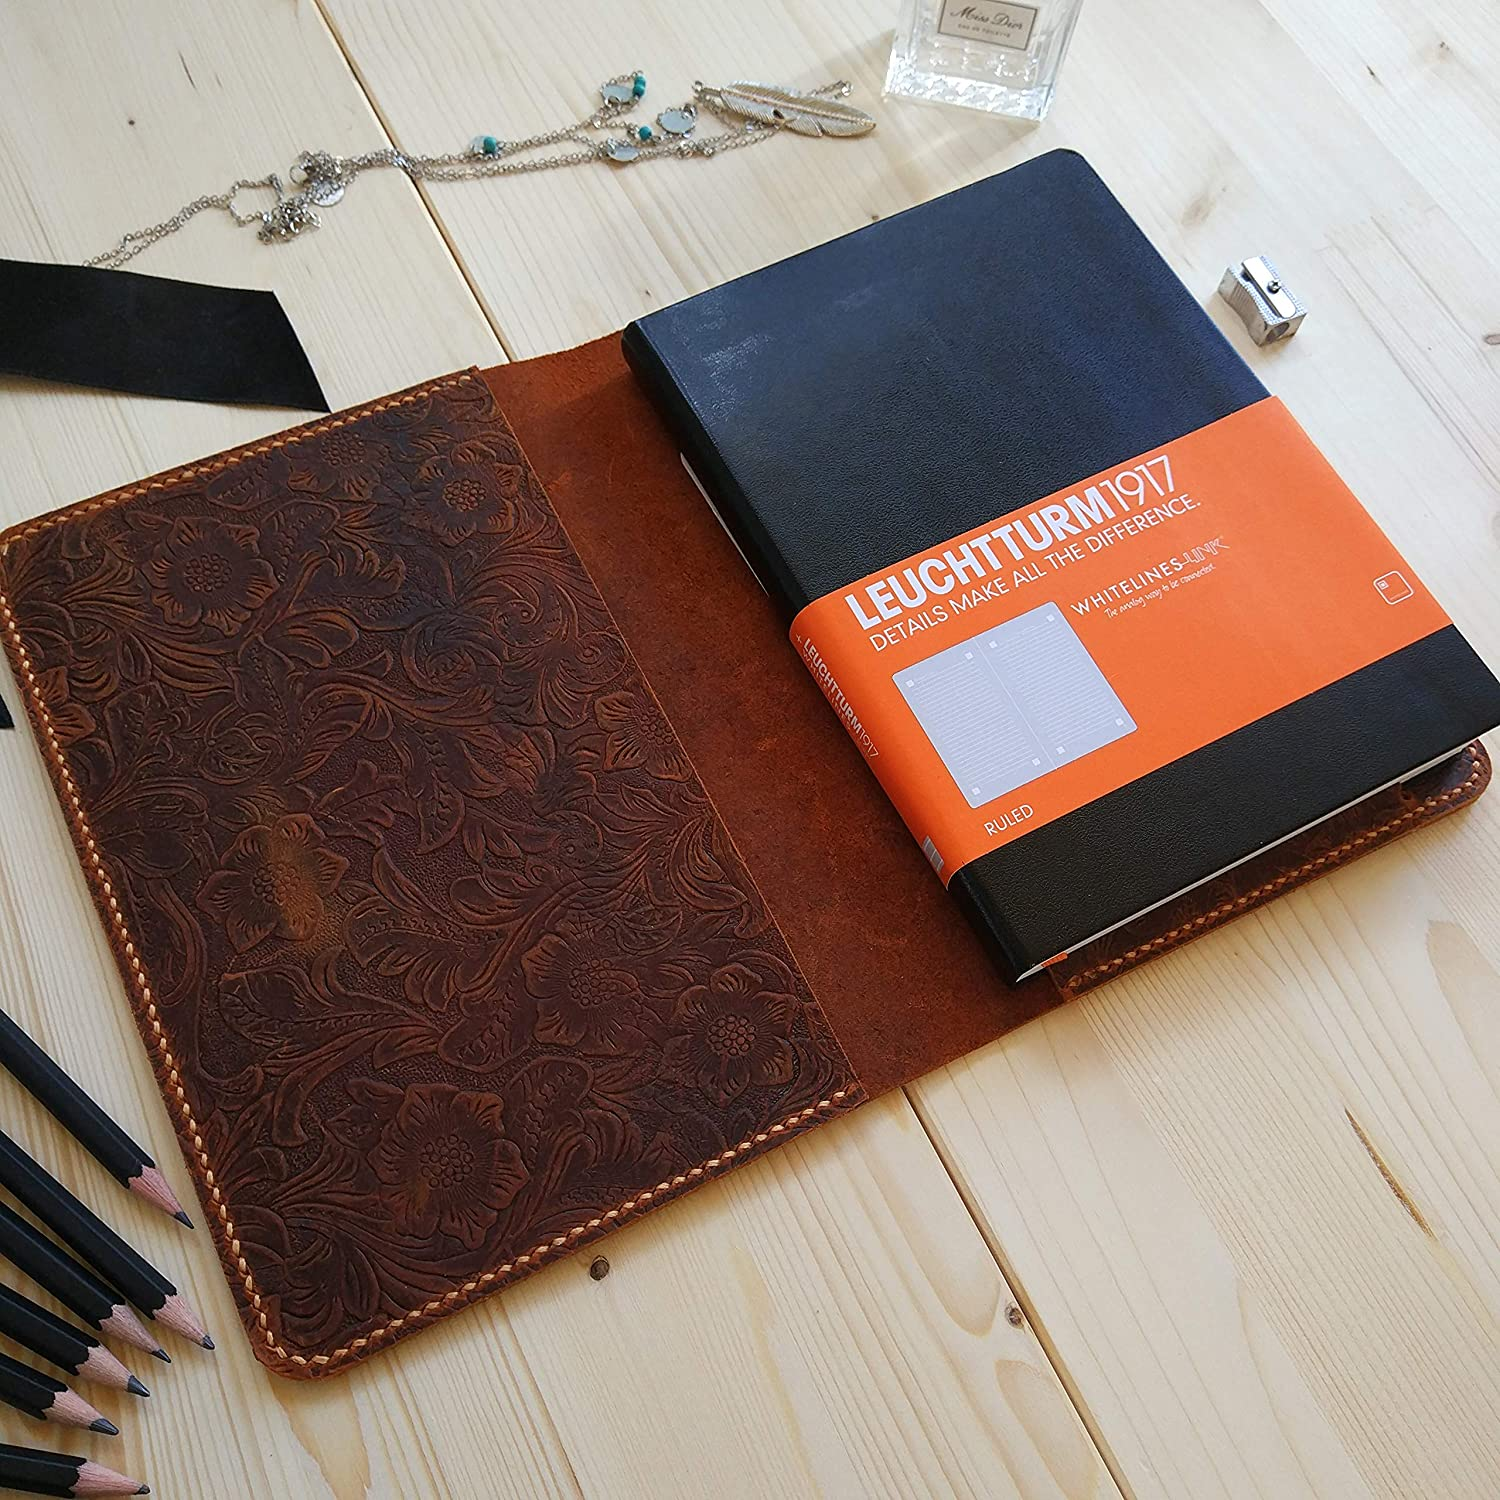 Amazon.com: Bullet Journal,Handmade Bullet Journal,Leather ...